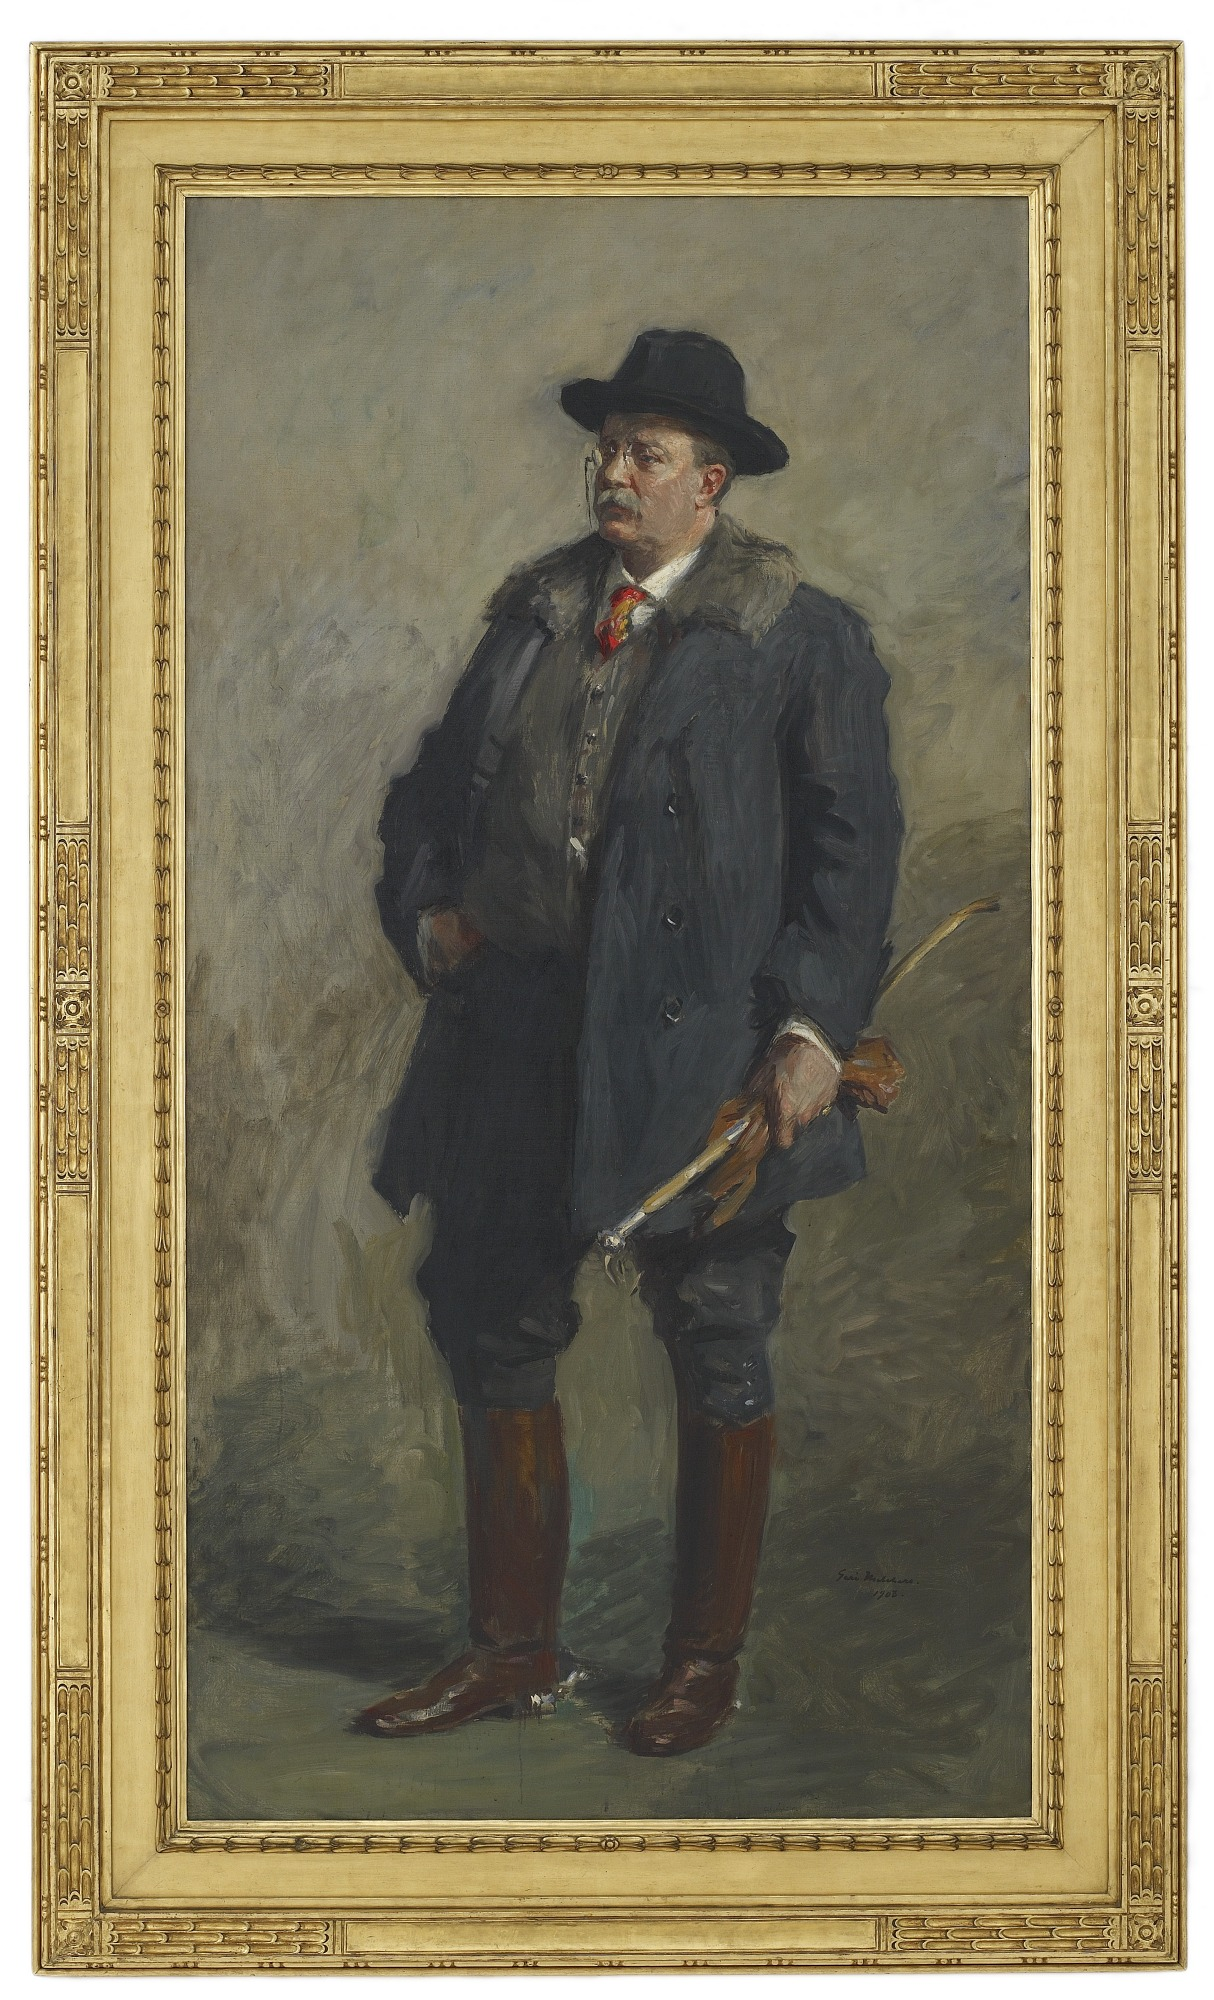 with frame: Portrait of President Theodore Roosevelt